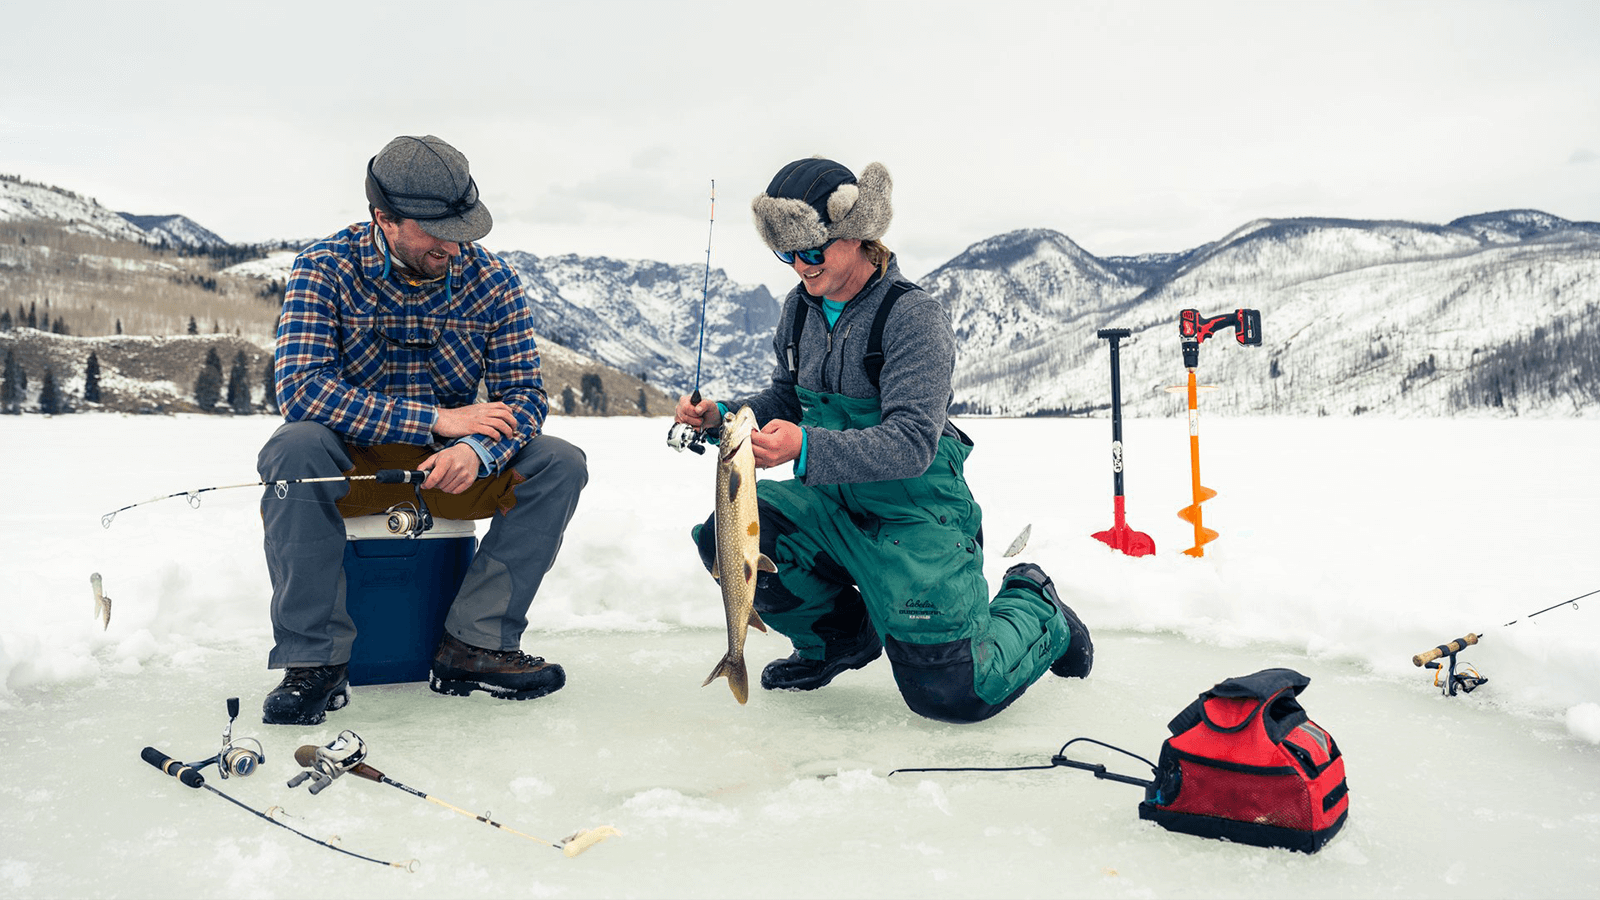 A couple guys ice fishing on a lake in the mountains.